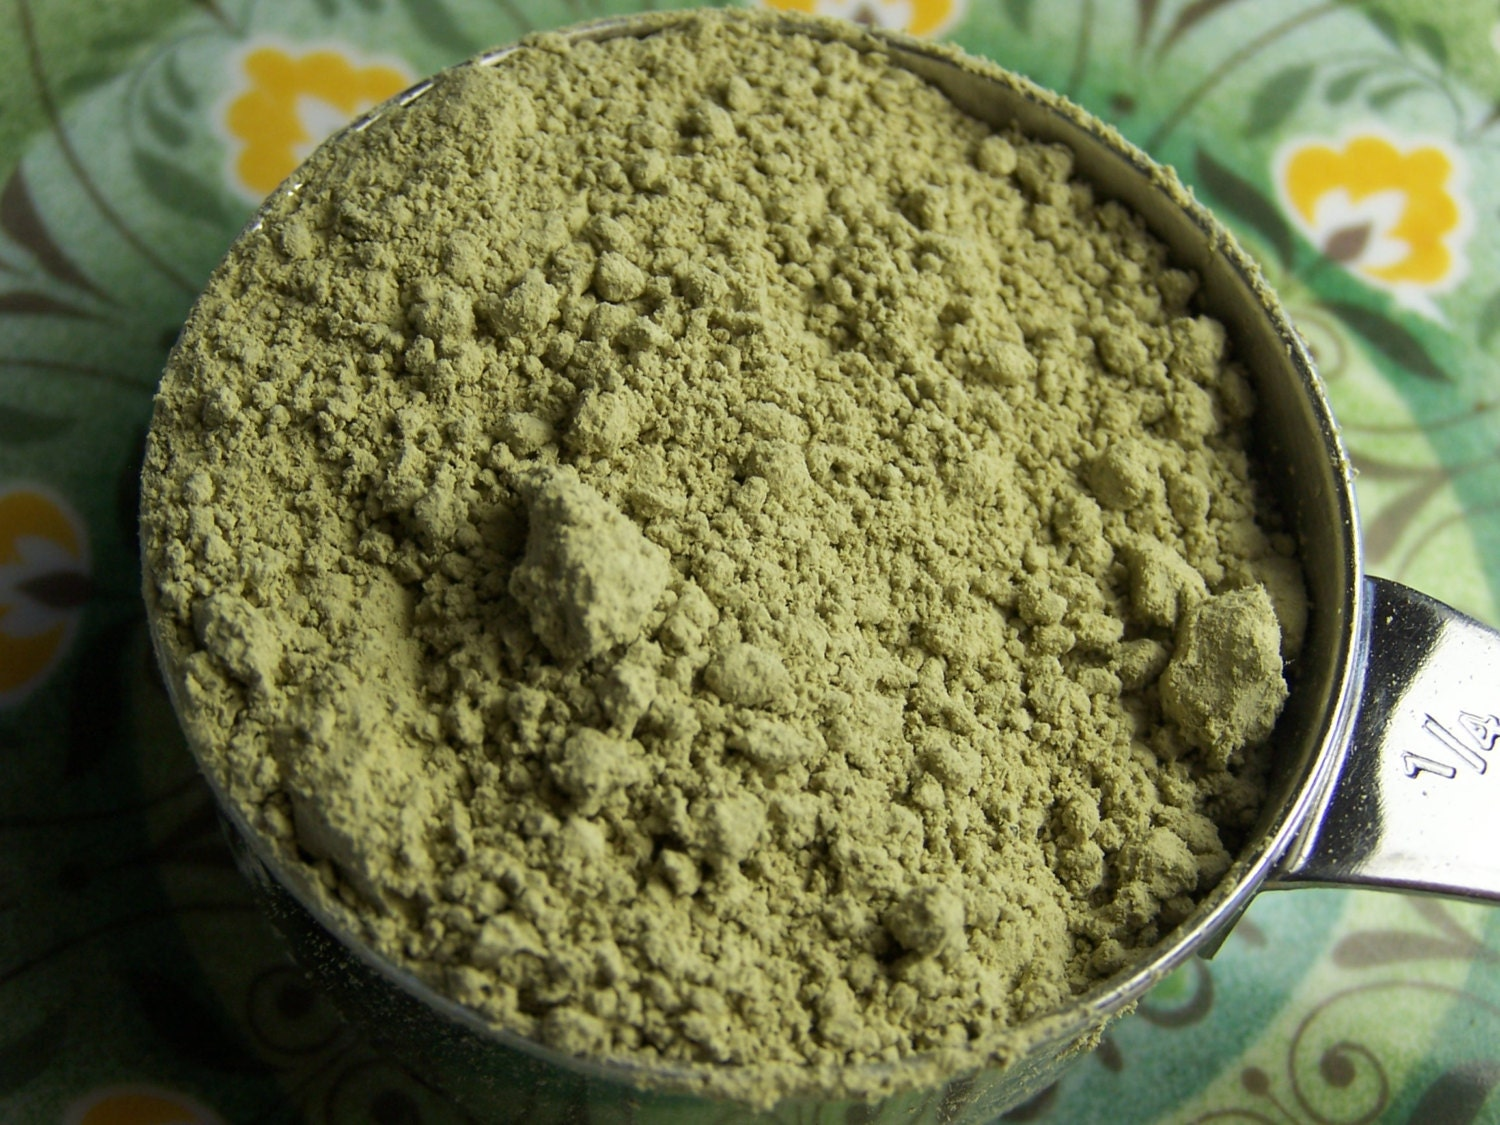 Dried kelp powder